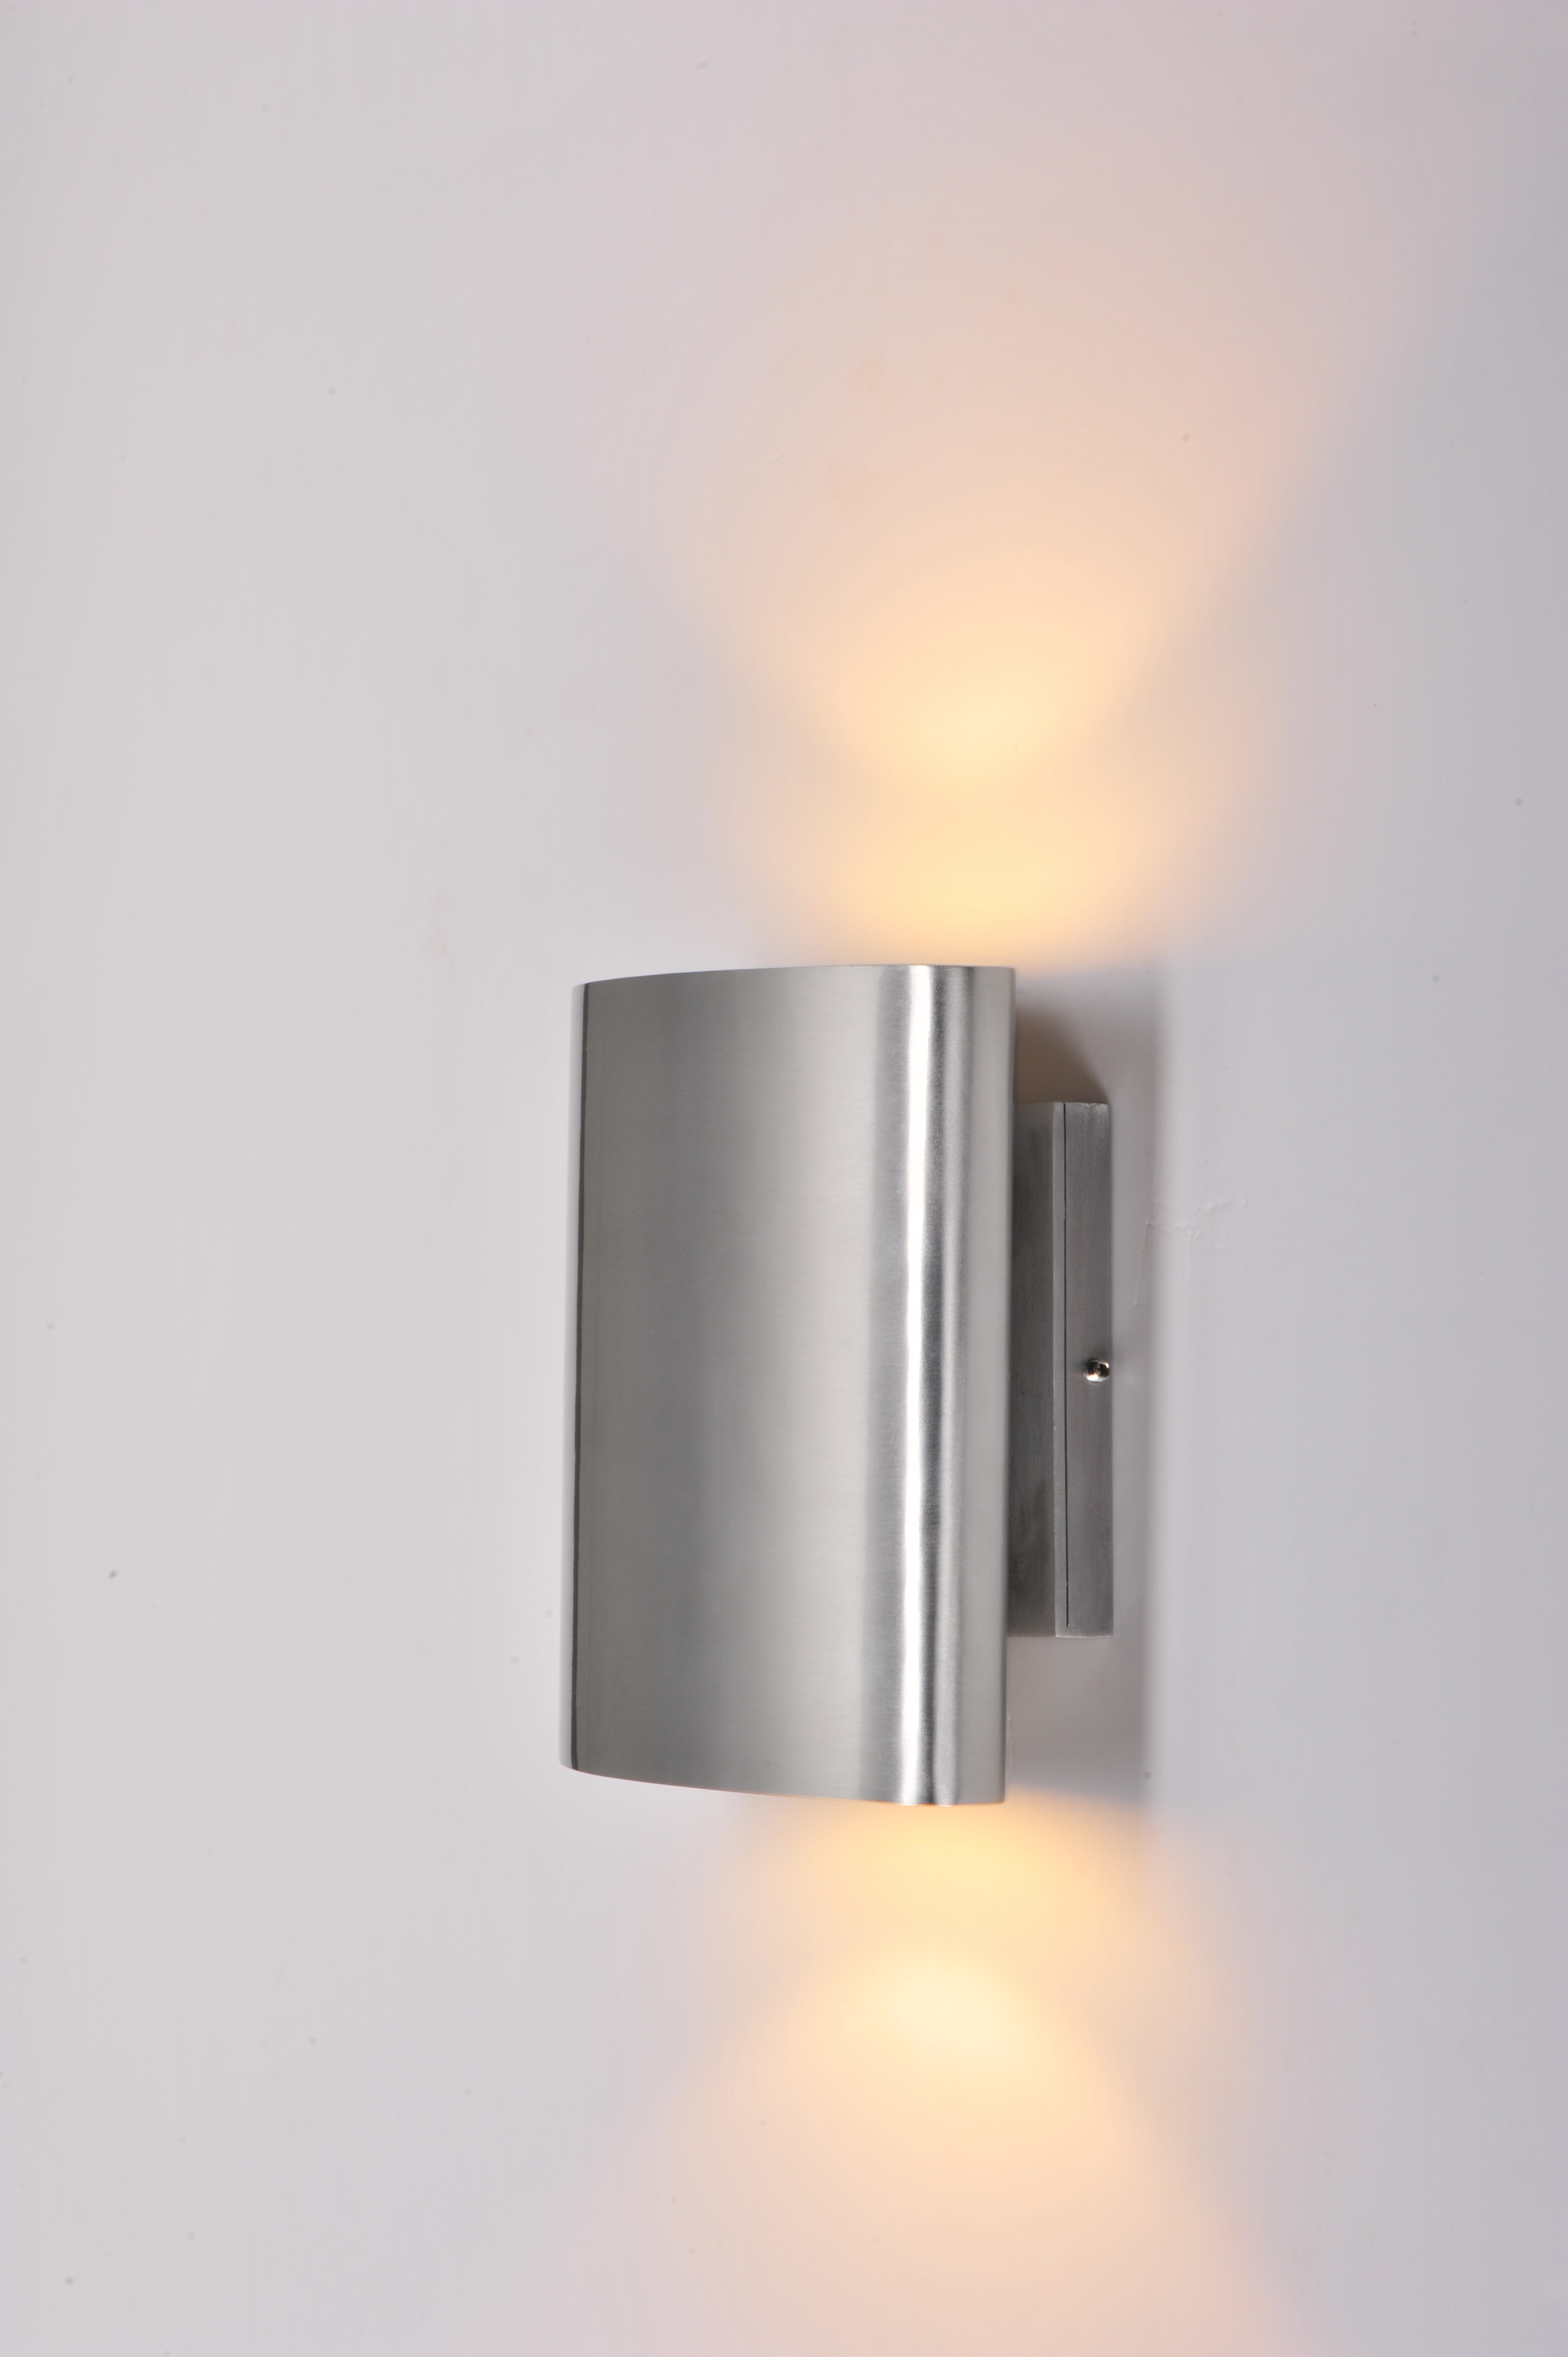 Mounting Height For Exterior Wall Sconces : Lightray LED Outdoor Wall Sconce - Outdoor Wall Mount - Maxim Lighting